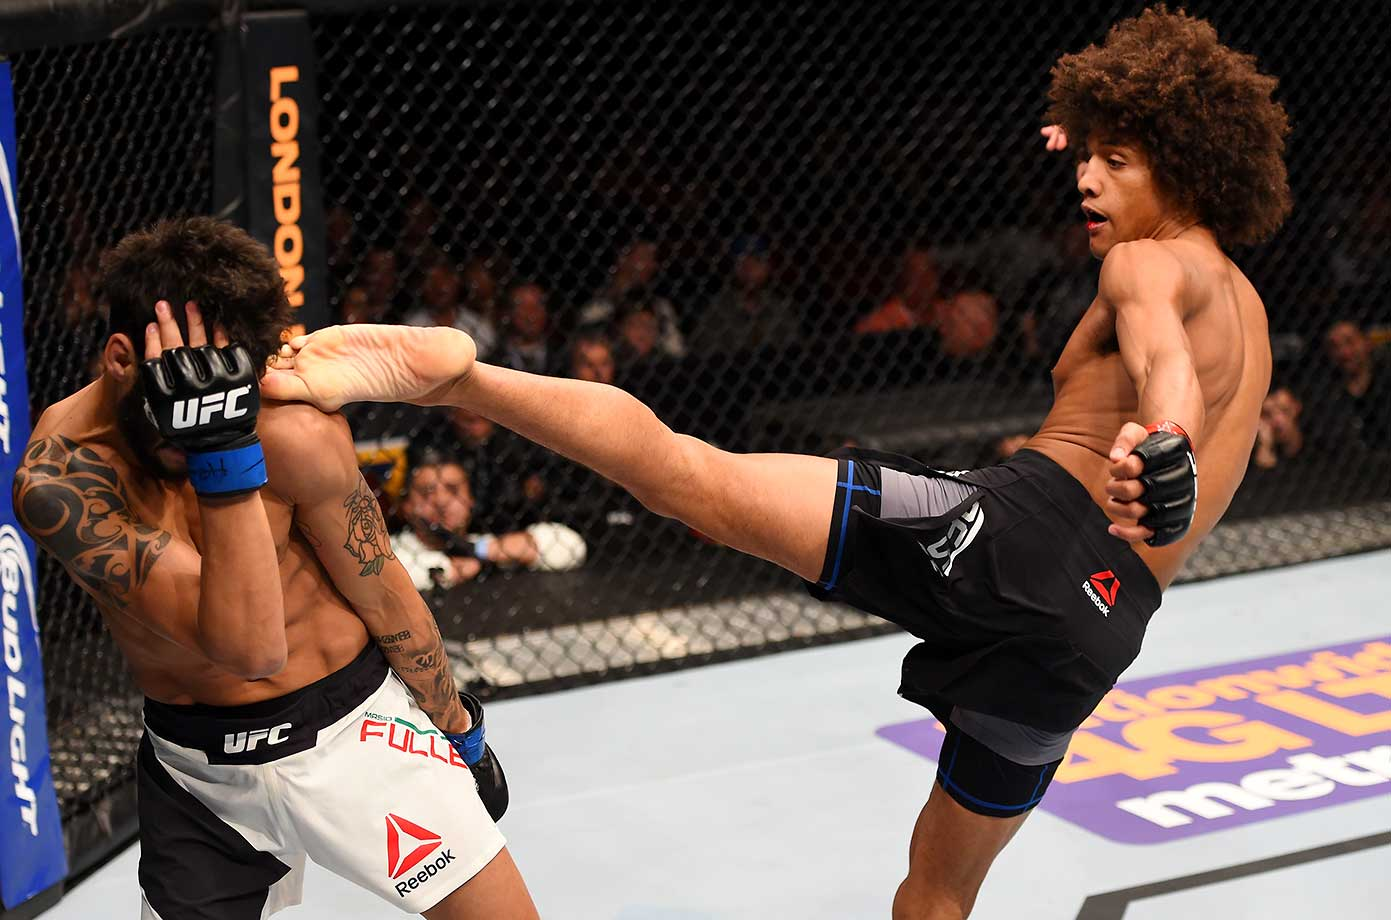 Alex Caceres kicks Masio Fullen in their featherweight bout during the UFC Fight Night event at the Prudential Center in Newark, New Jersey.